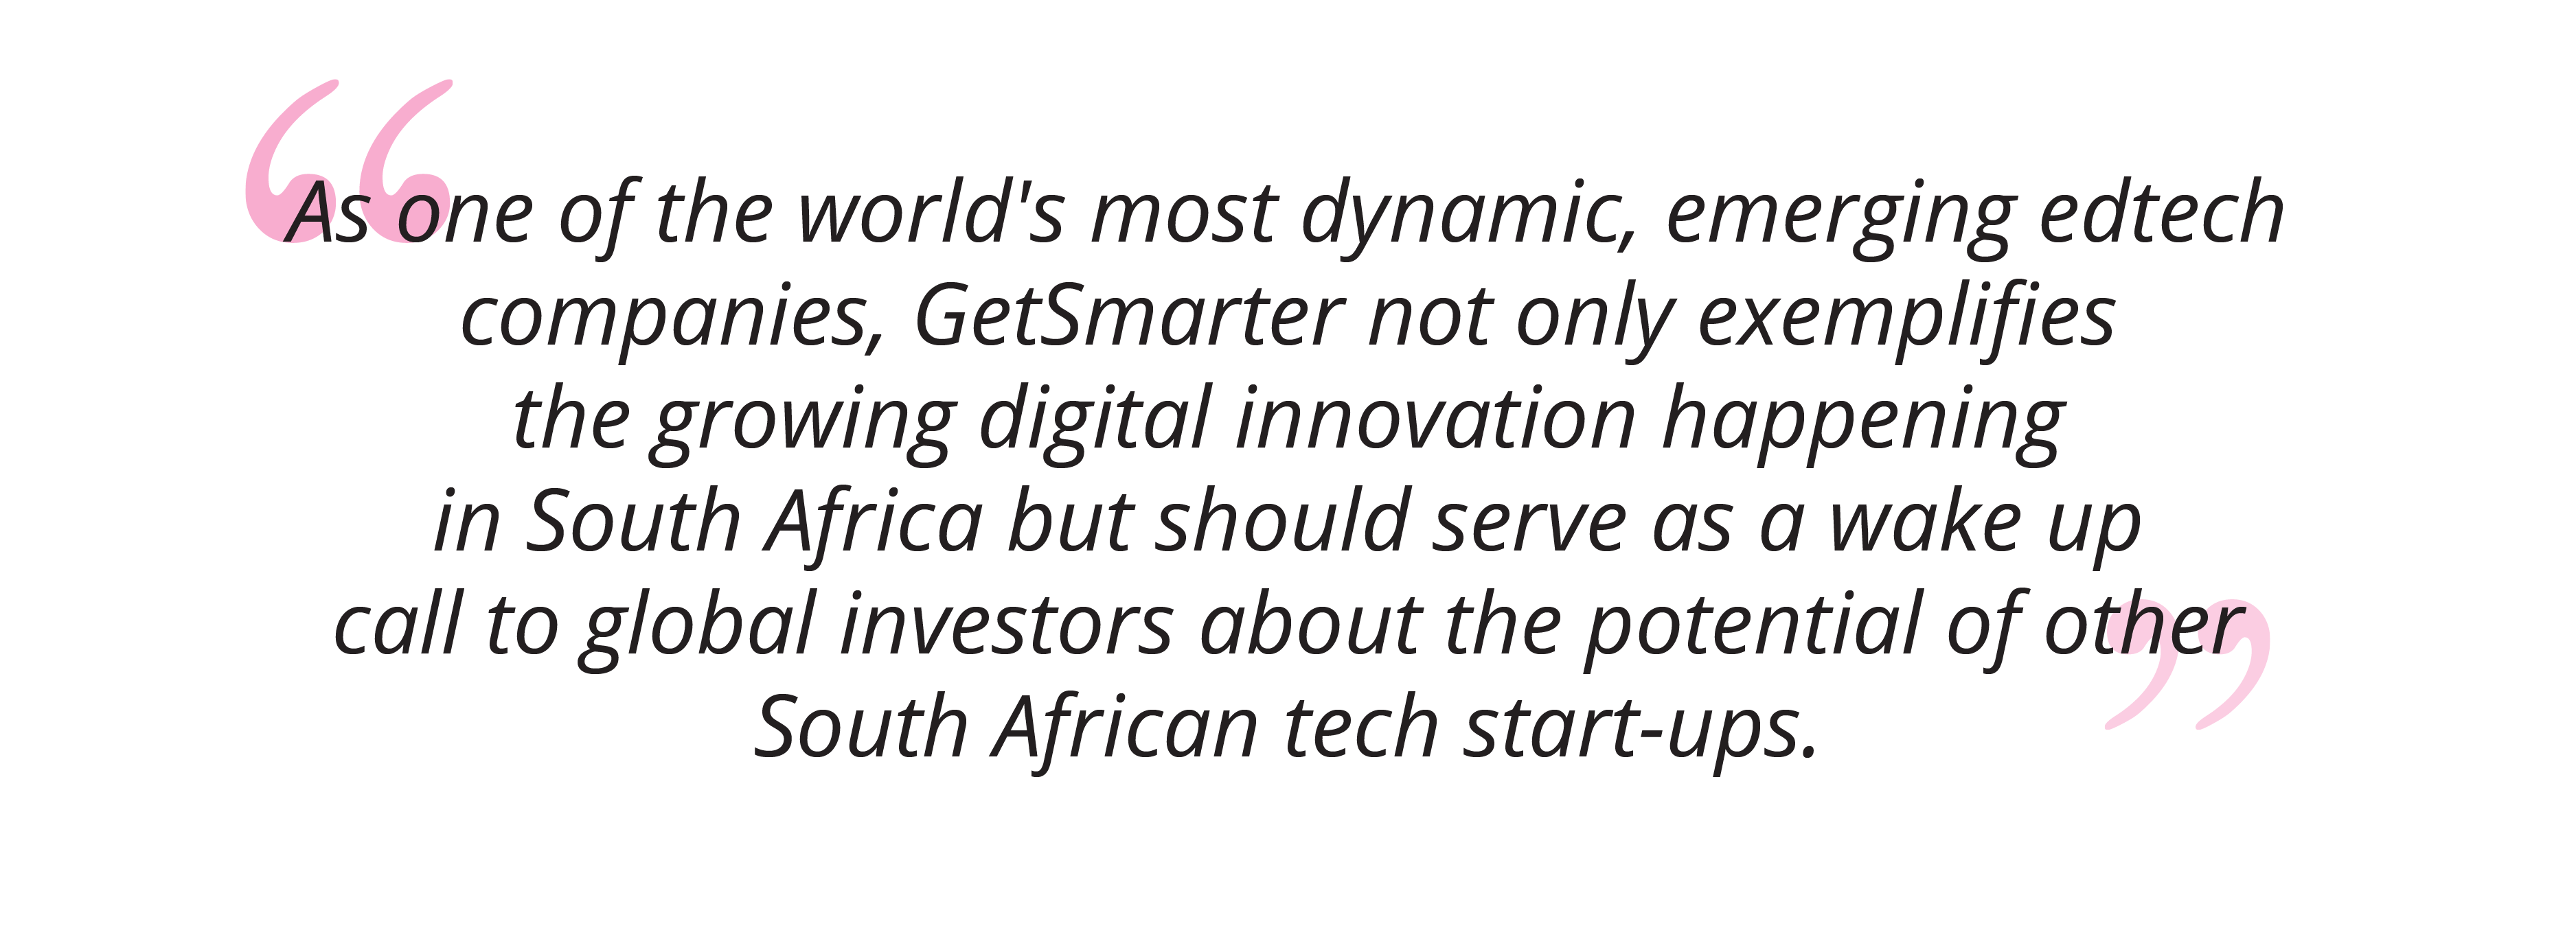 How GetSmarter Is Paving The Way For A Silicon Cape